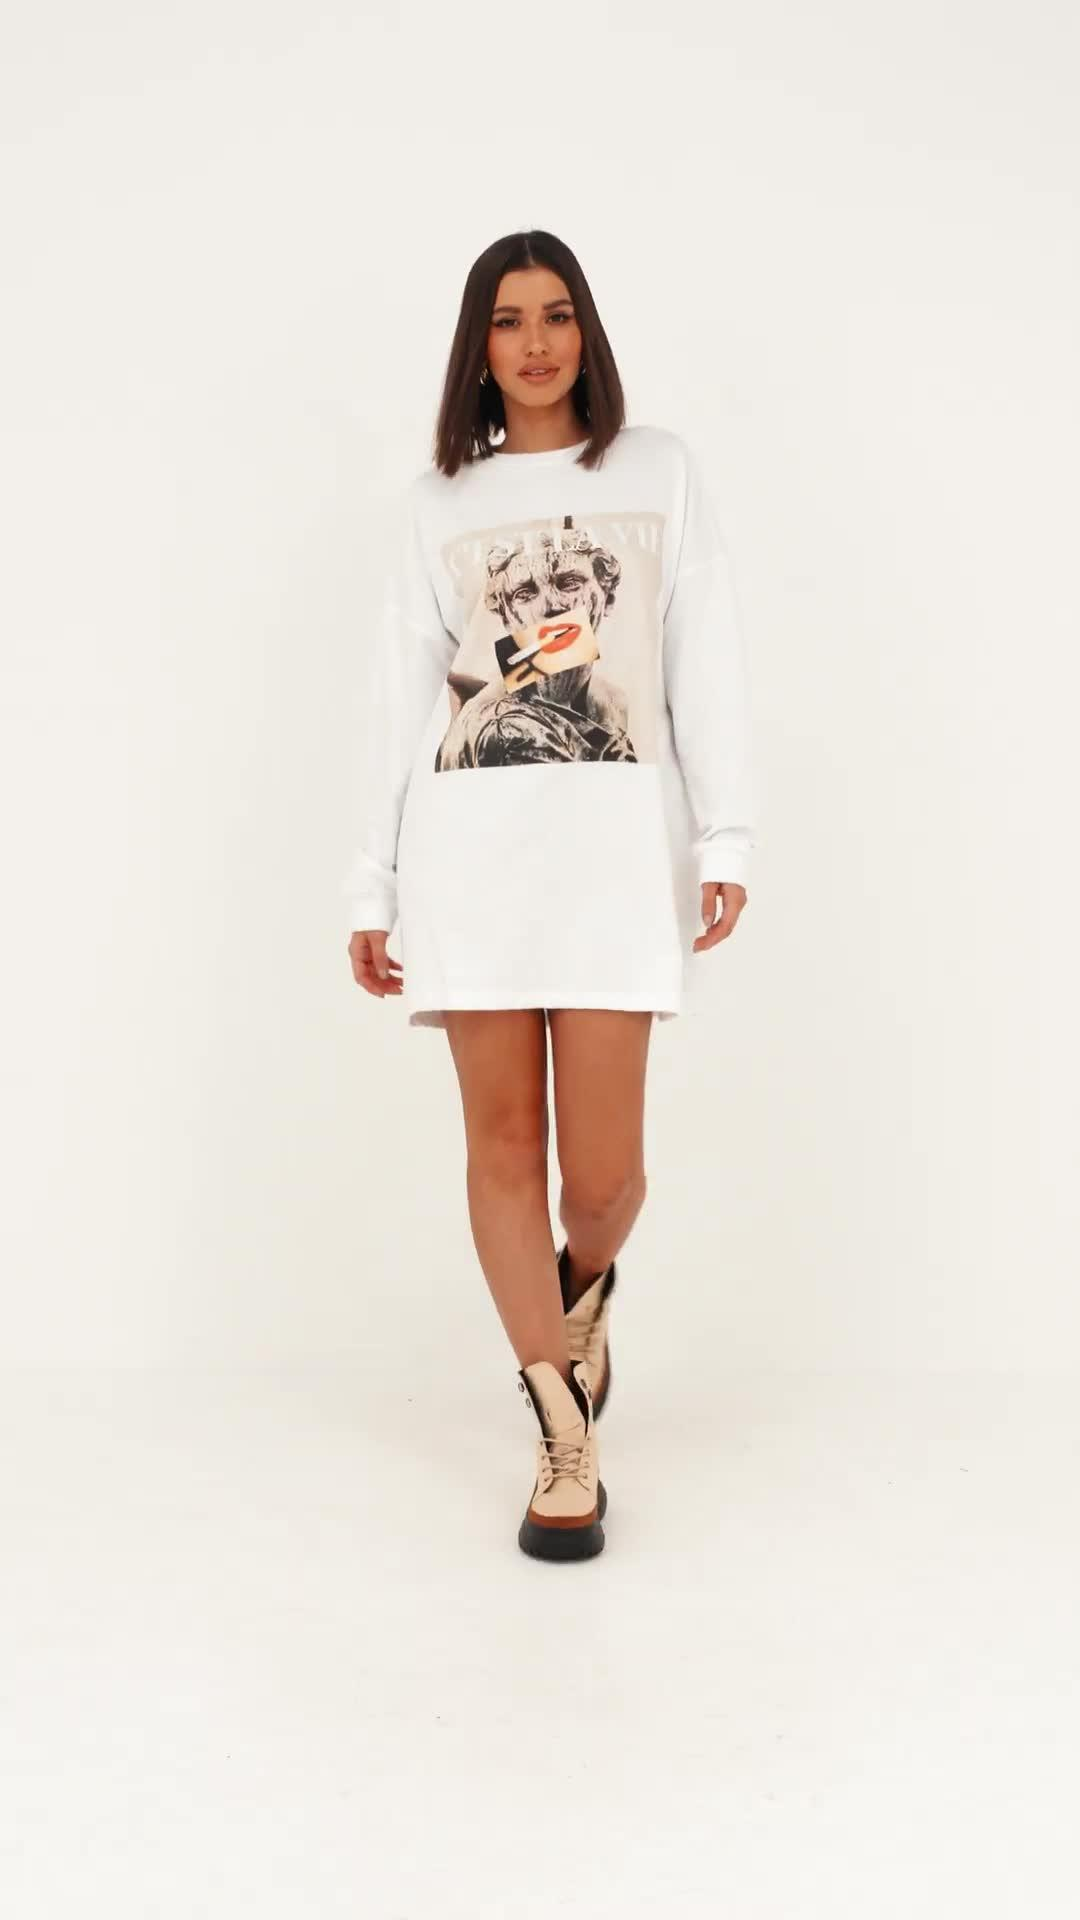 9707c3ee40d Missguided - White Graphic Print Oversized Sweater Dress - Lyst. View  fullscreen